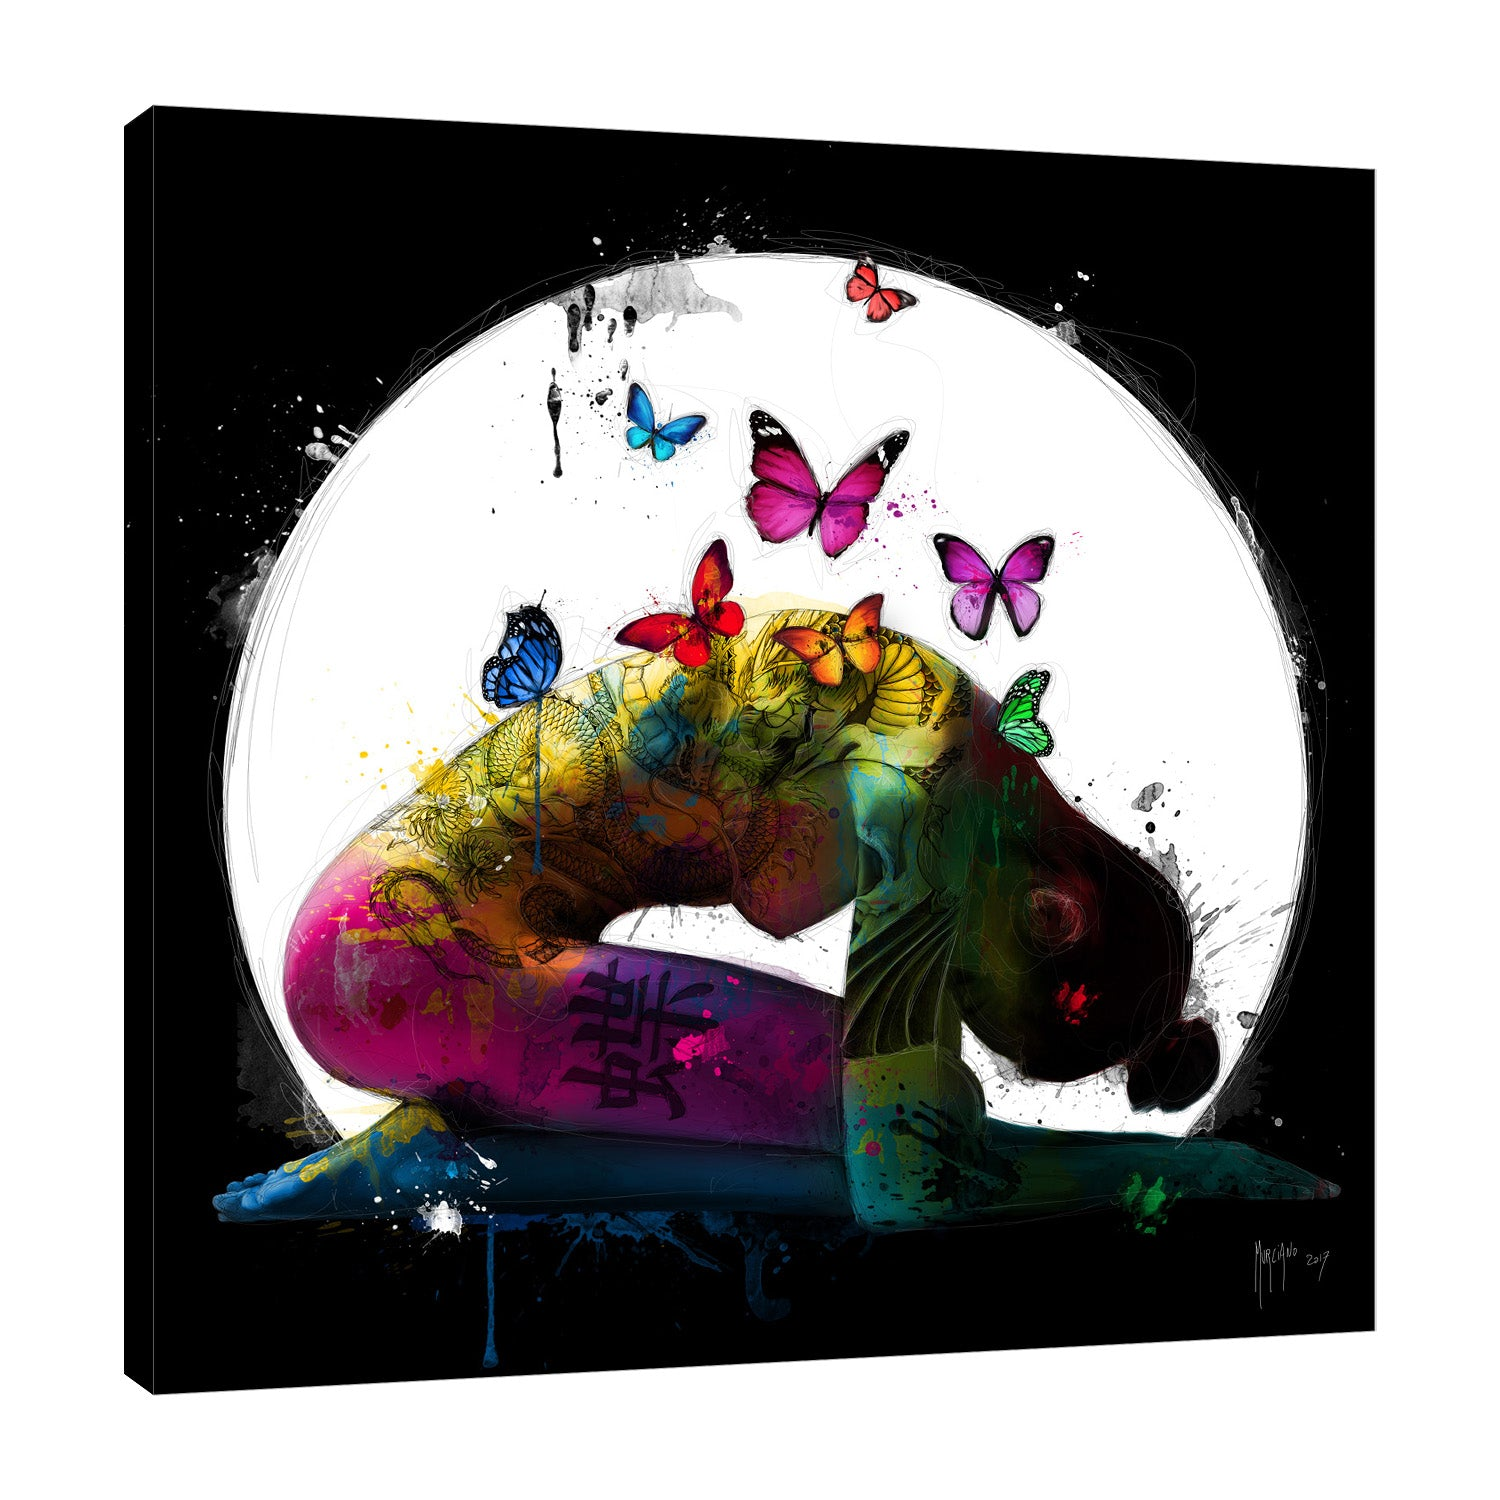 Patrice-Murciano,Modern & Contemporary,Fashion,butterflies,moon,woman,splatters,Red,Black,Blue,Purple,Gray